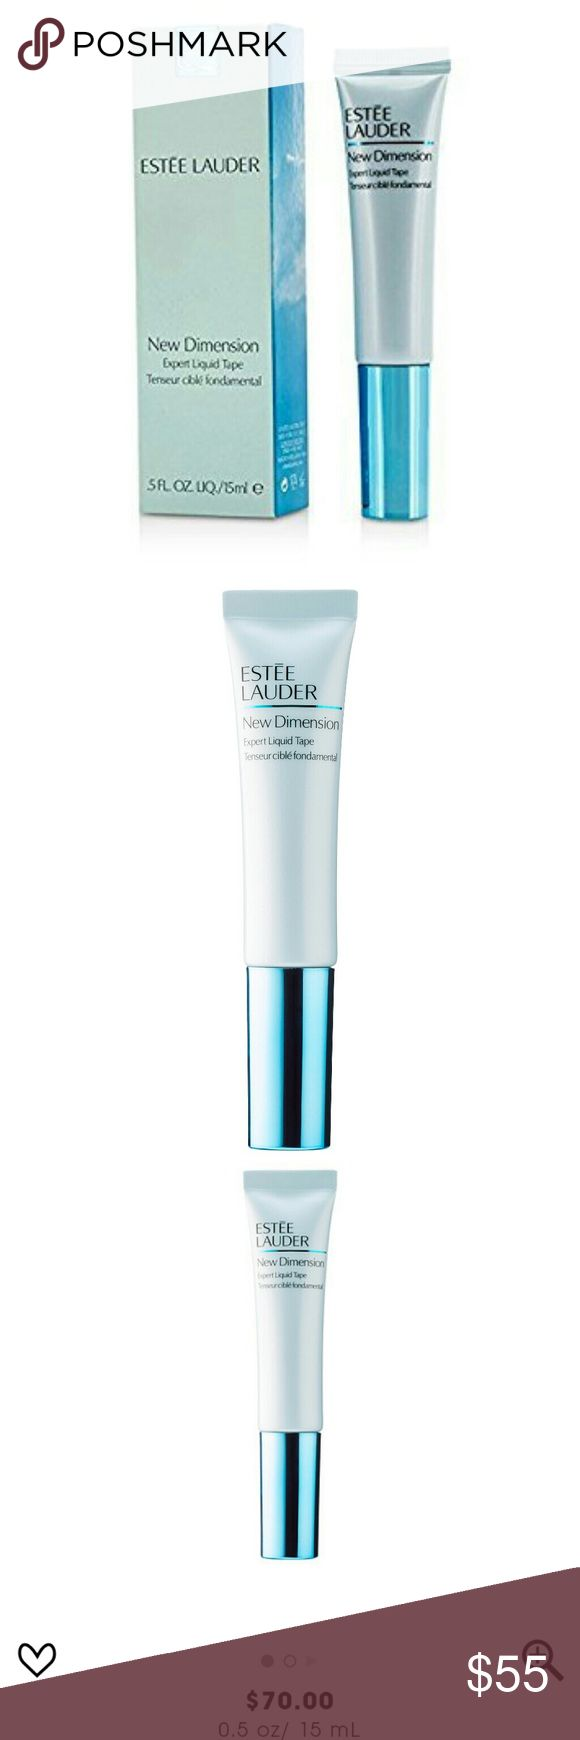 Estee Lauder New Dimensions Liquid Tape Brand new and sealed!  0.05 OZ  This transforming, precision-accurate treatment with fast-acting polymers targets and helps give a tighter feel to key facial contours. Over time, its powerful concentration of pro-collagen technology helps firm, tone, and give a more sculpted, lifted look around your eyes. Skin will look more radiant and more defined—so that every angle becomes your best angle. Estee Lauder Makeup